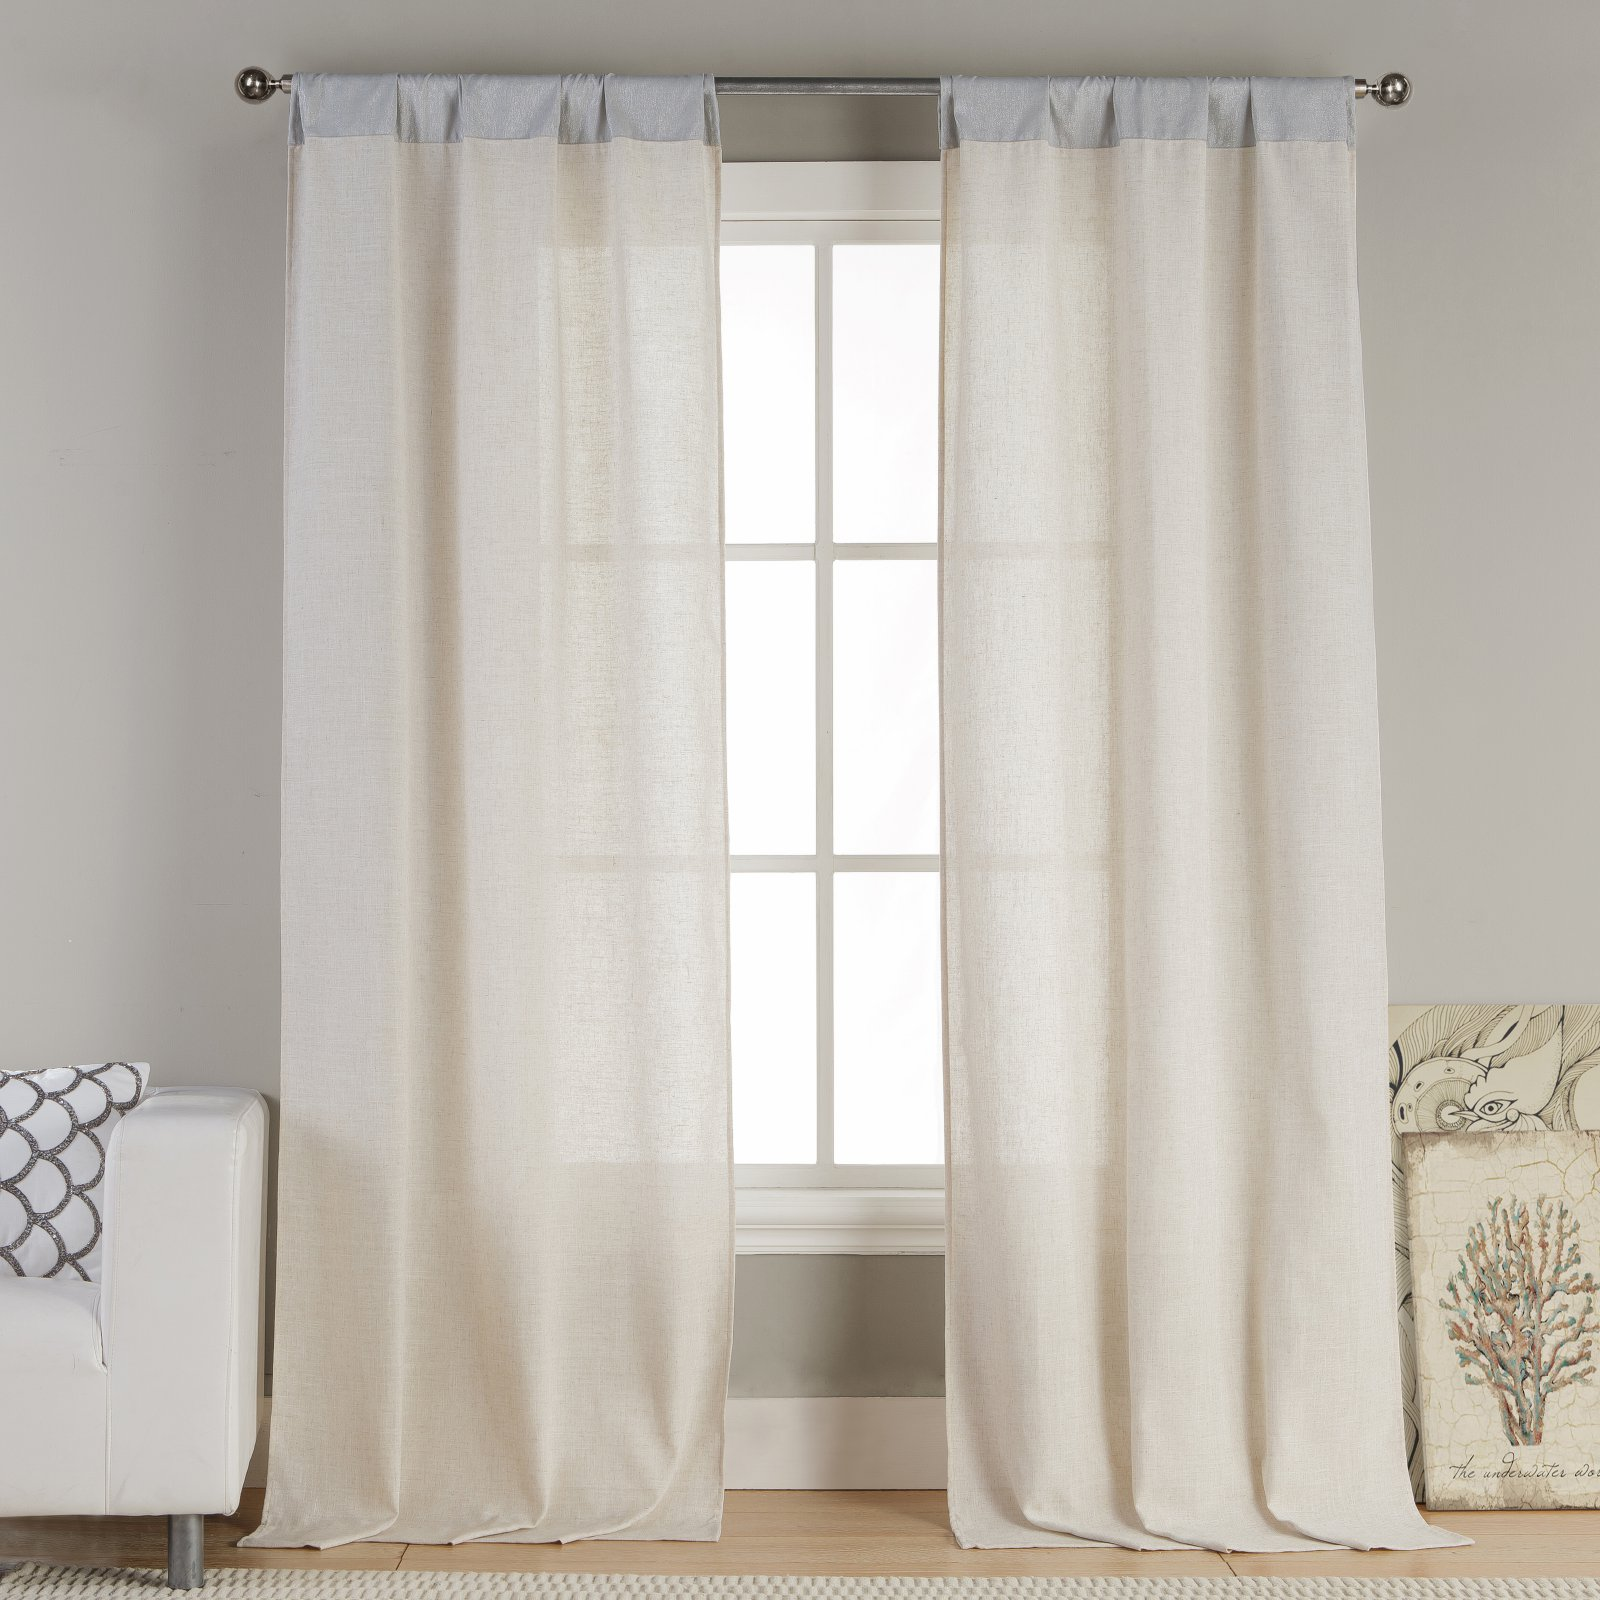 Duck River Kinlee Pole Top Curtain Panel Pair